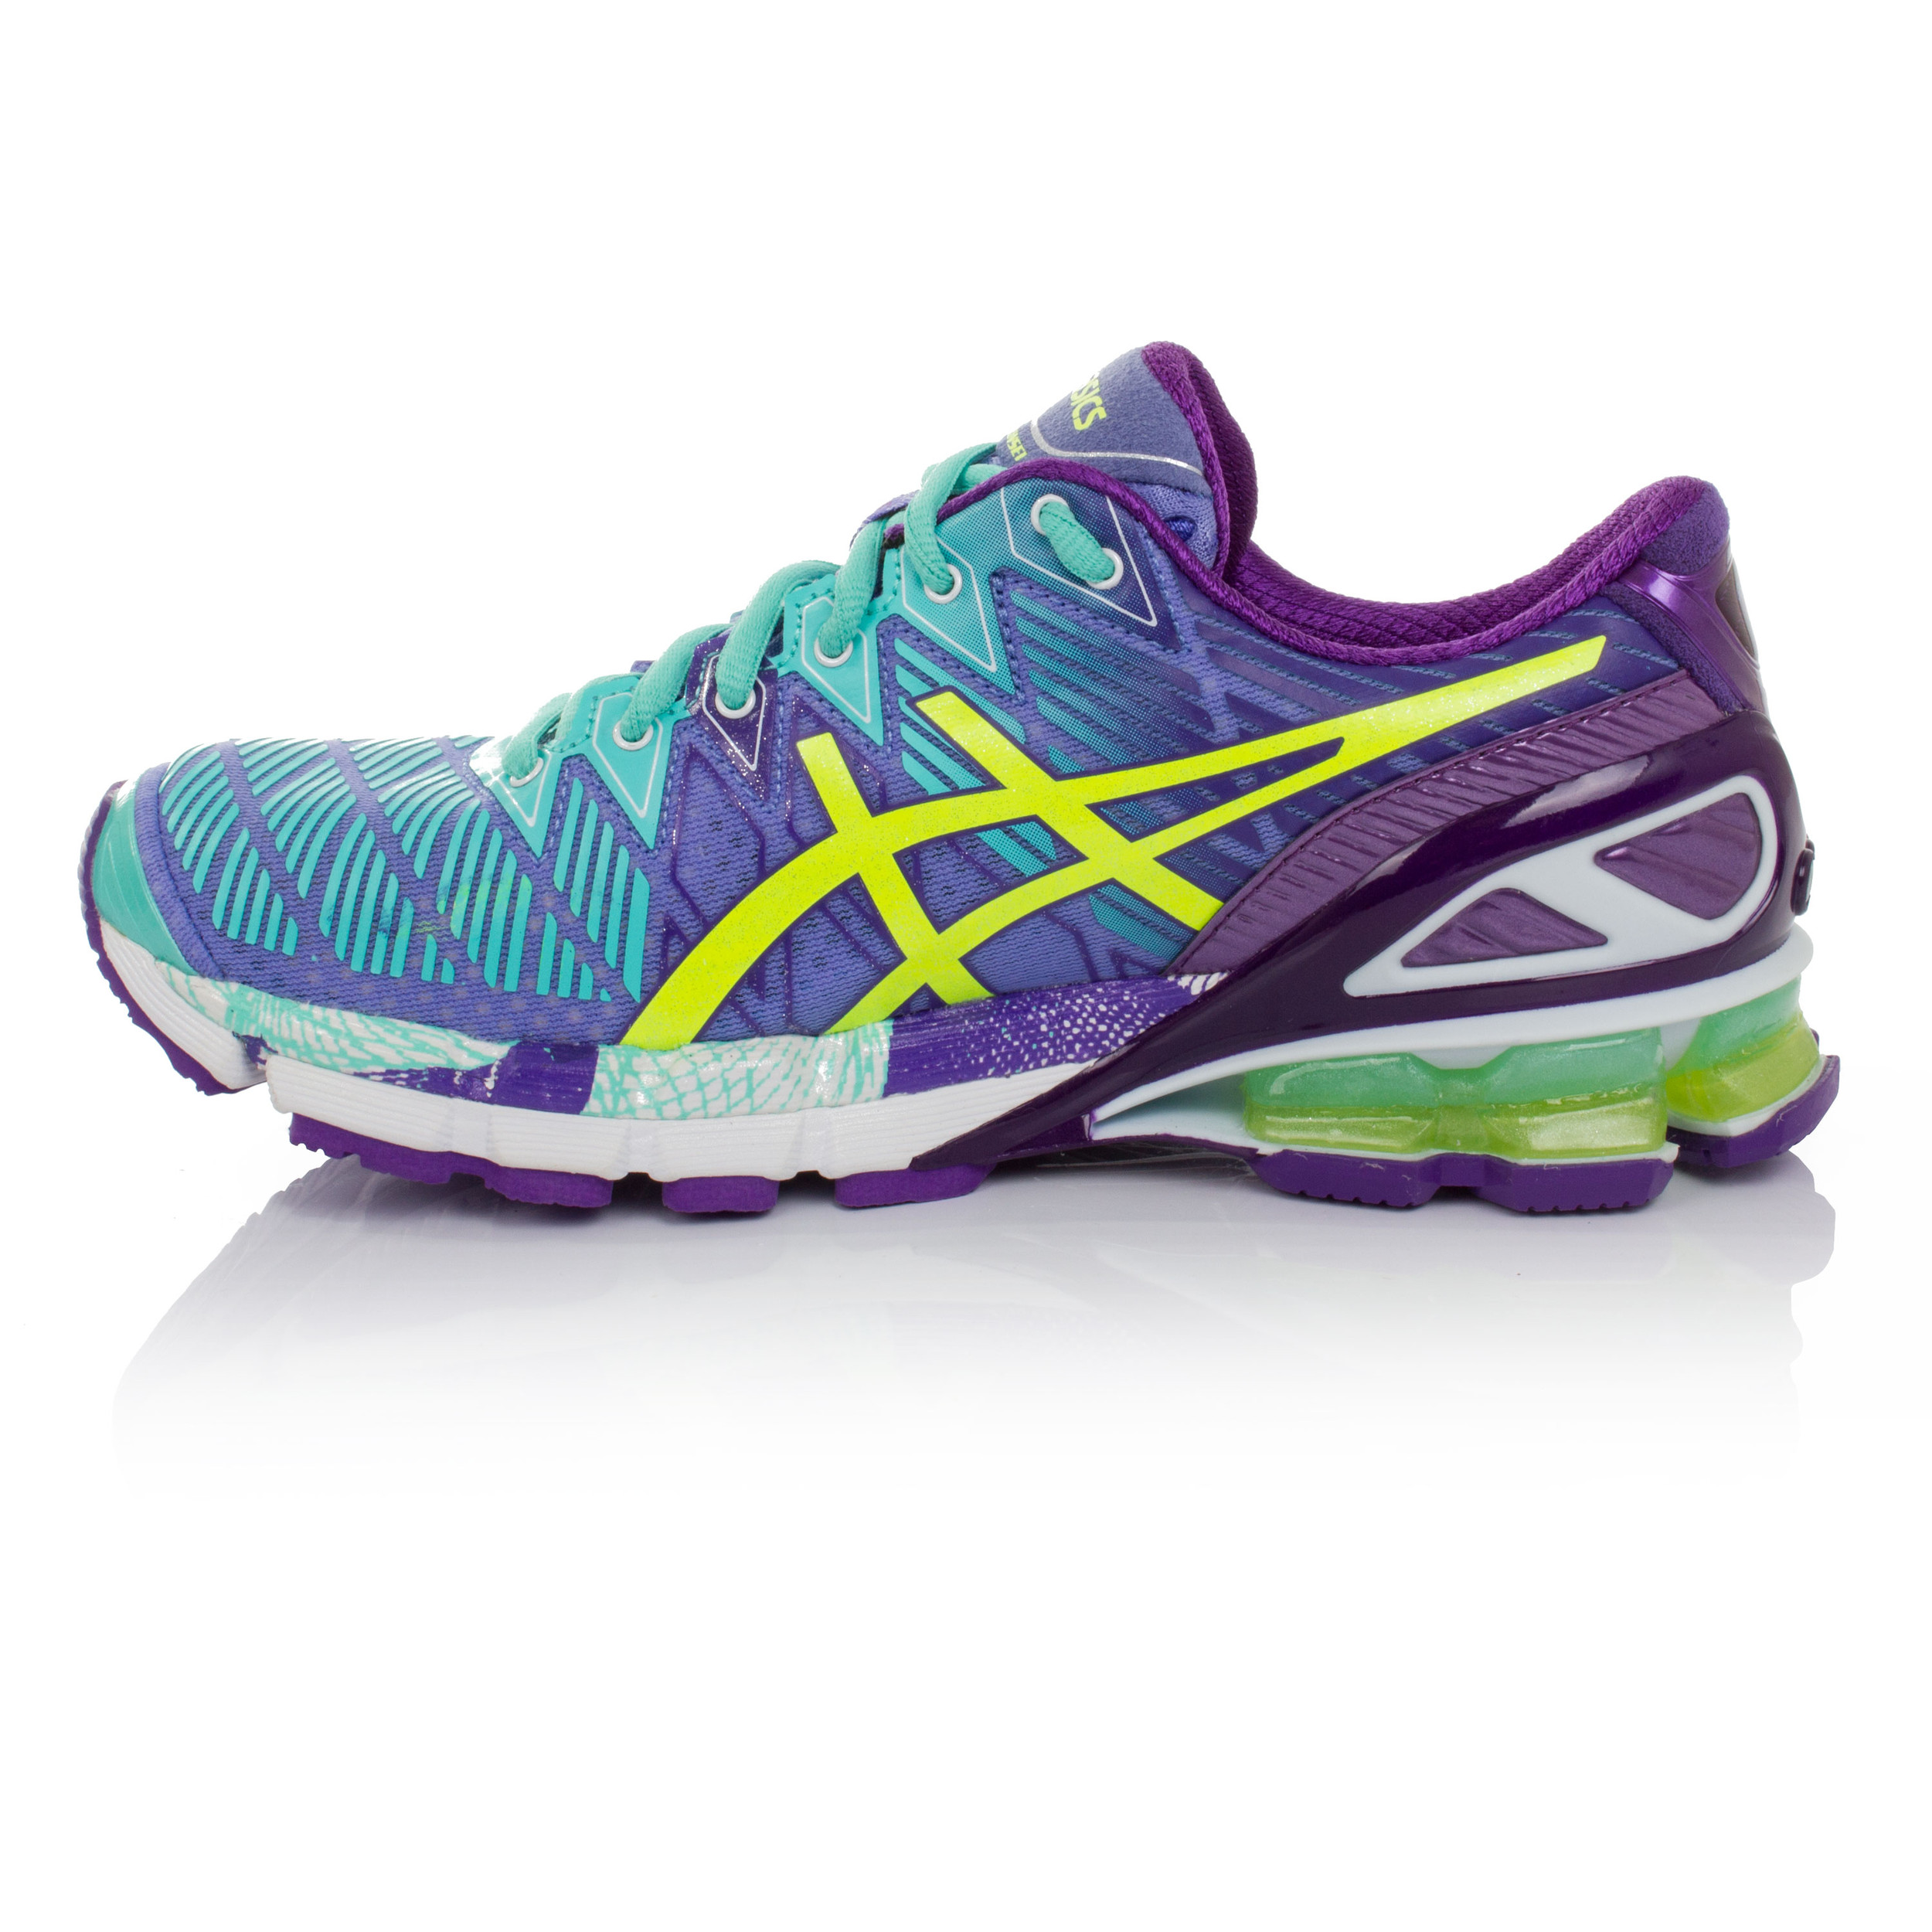 premium selection a1c24 d40ed Asics Gel-Kinsei 5 Womens Green Purple Cushioned Running Trainers Sports  Shoes